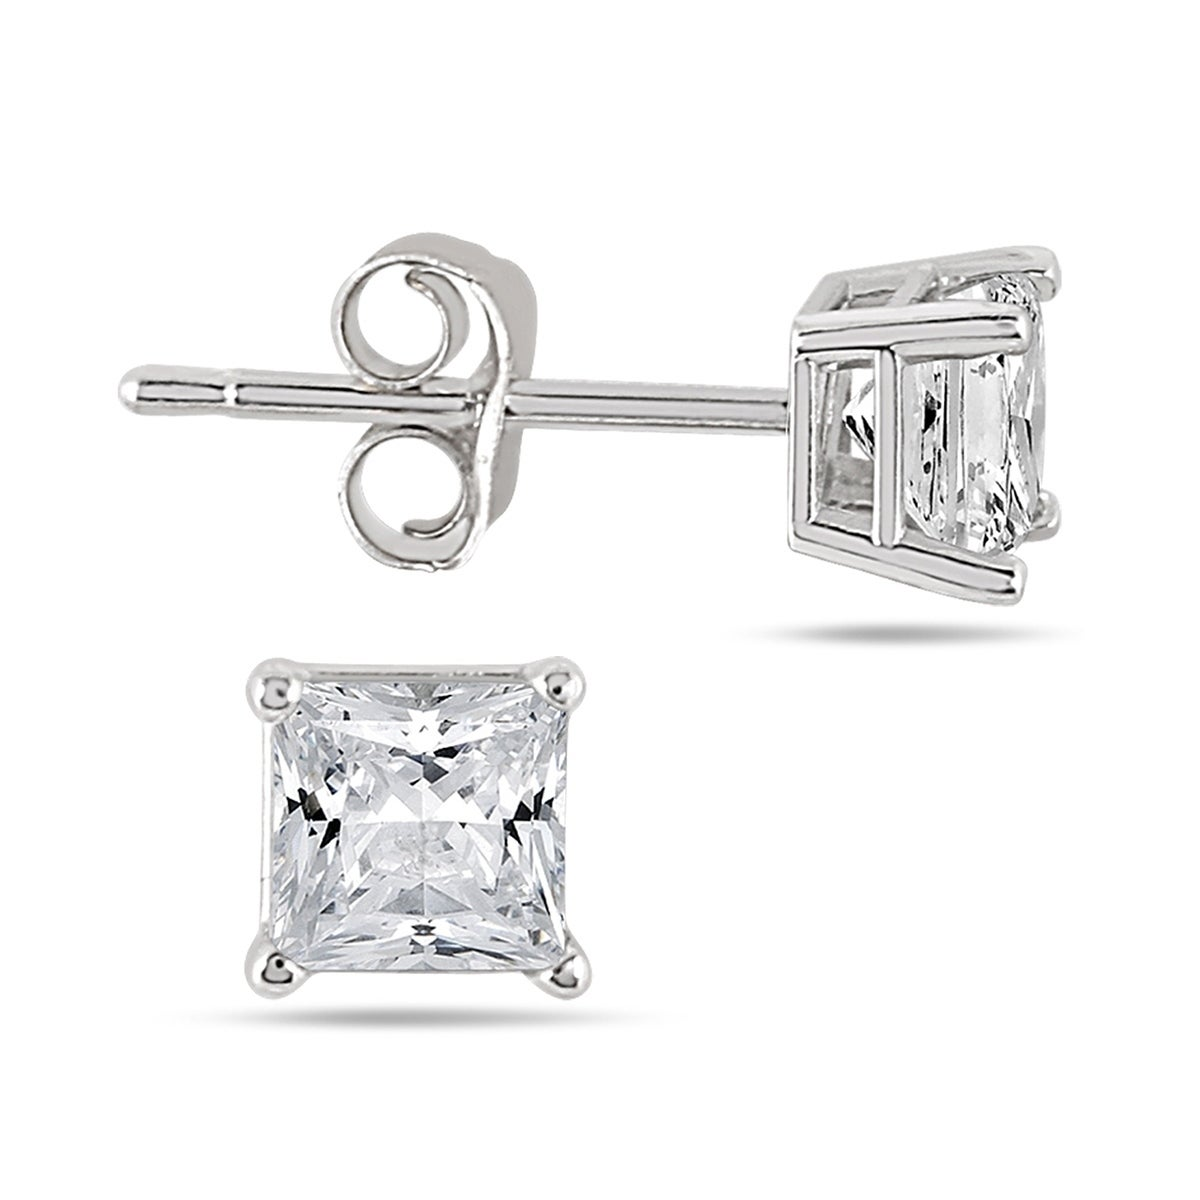 d83dccab3 Shop 1/2 Carat TW Princess Diamond Studs in 14K White Gold (H-I Color,  SI1-SI2 Clarity) - On Sale - Free Shipping Today - Overstock - 20751131